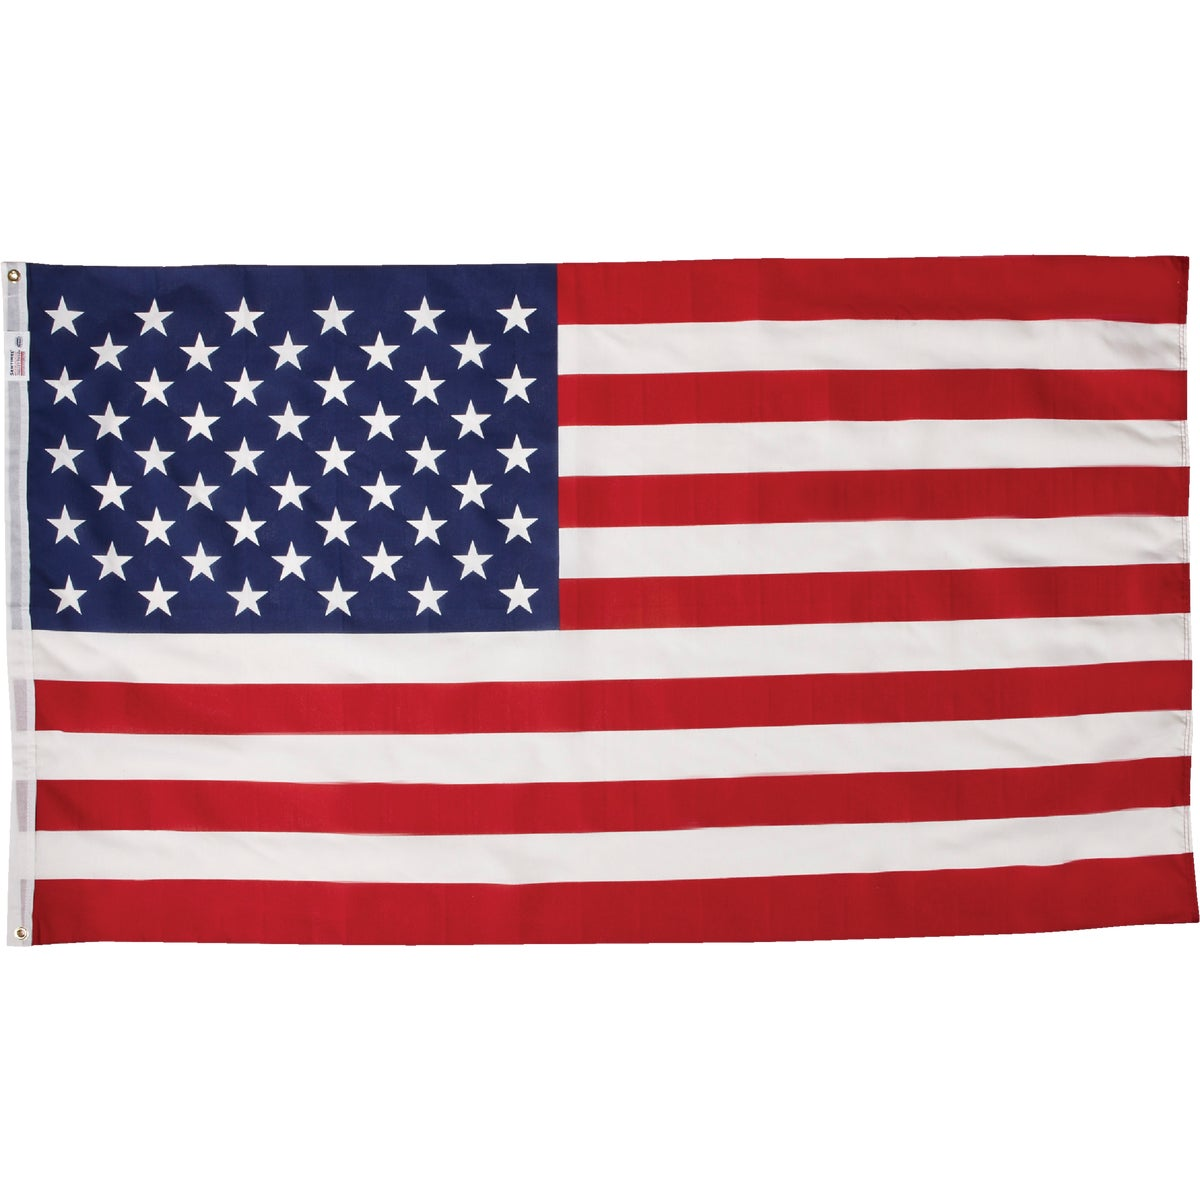 3X5 POLY COTTON FLAG - USS-1 by Valley Forge Flag